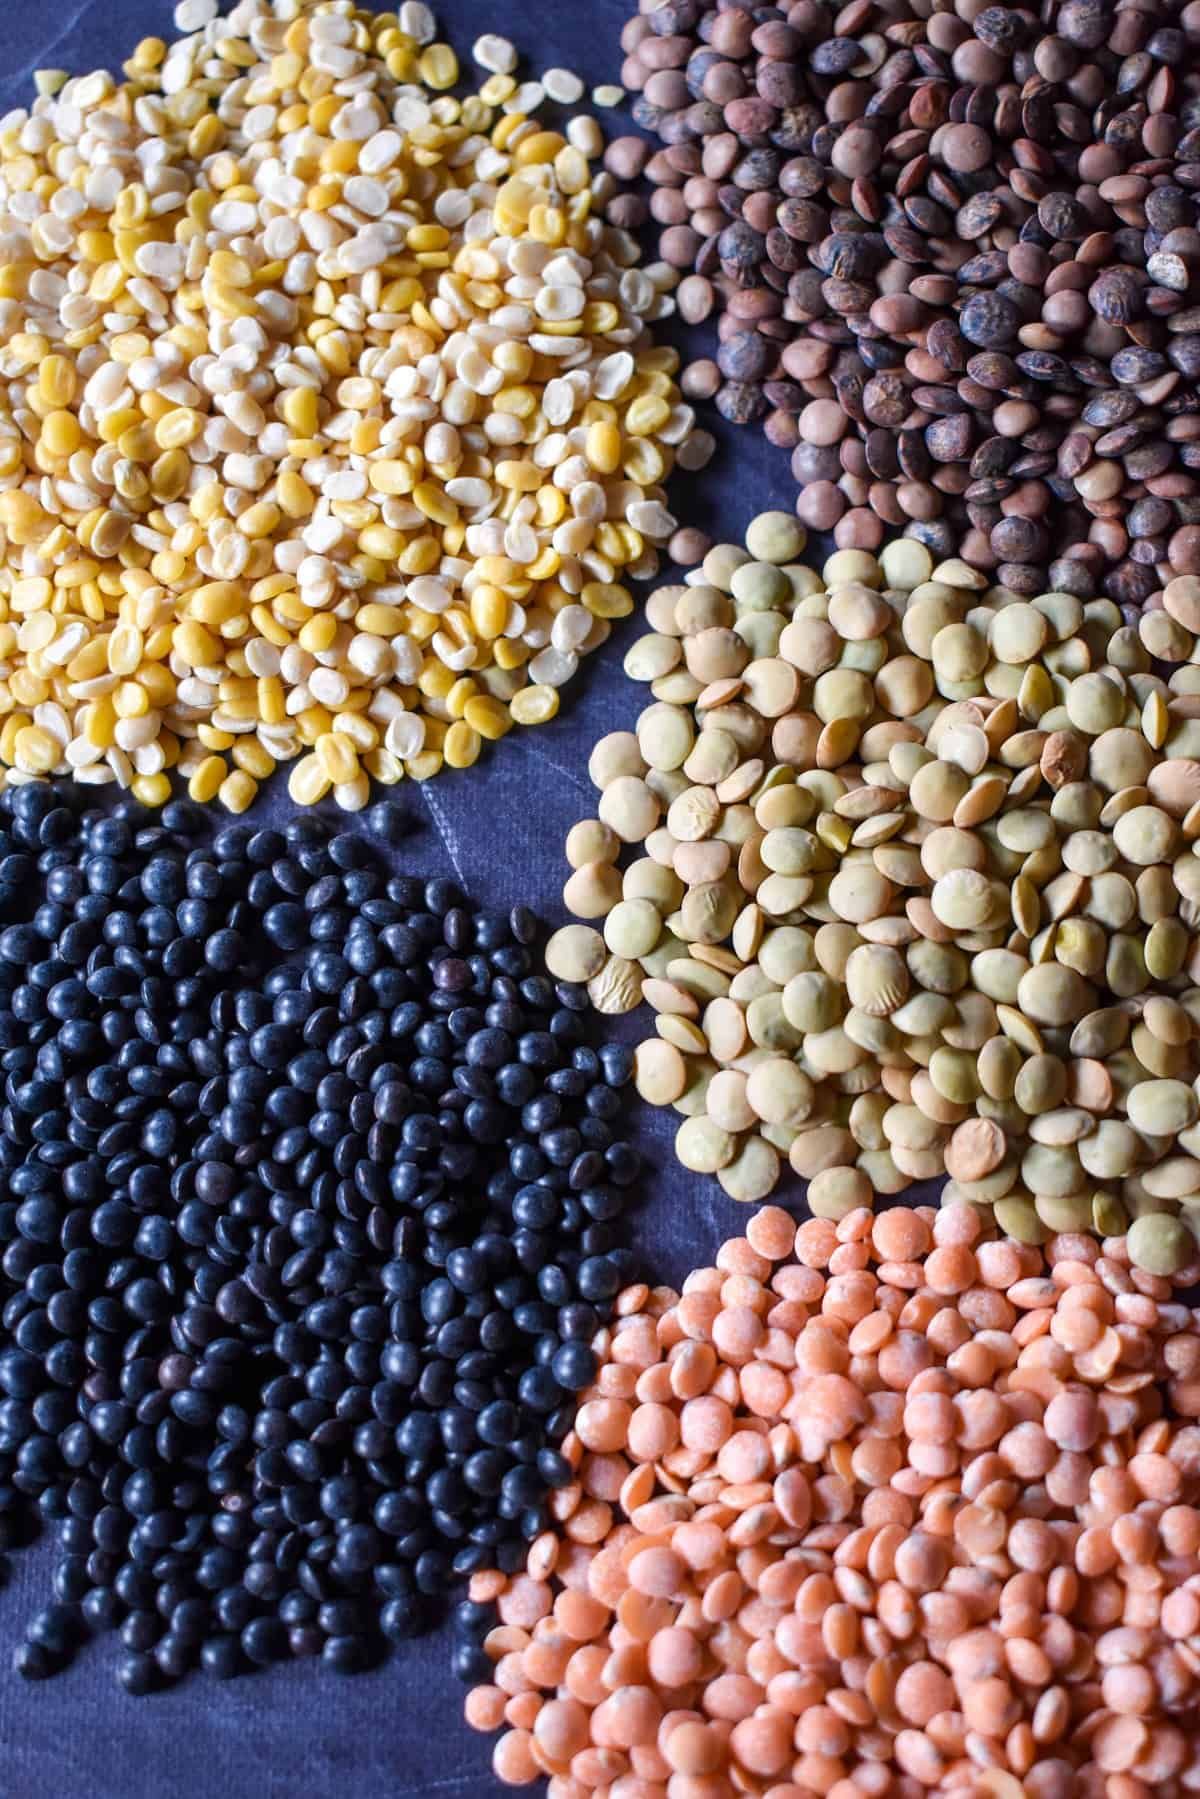 An image of the different lentils arranged in small piles on a black surface.